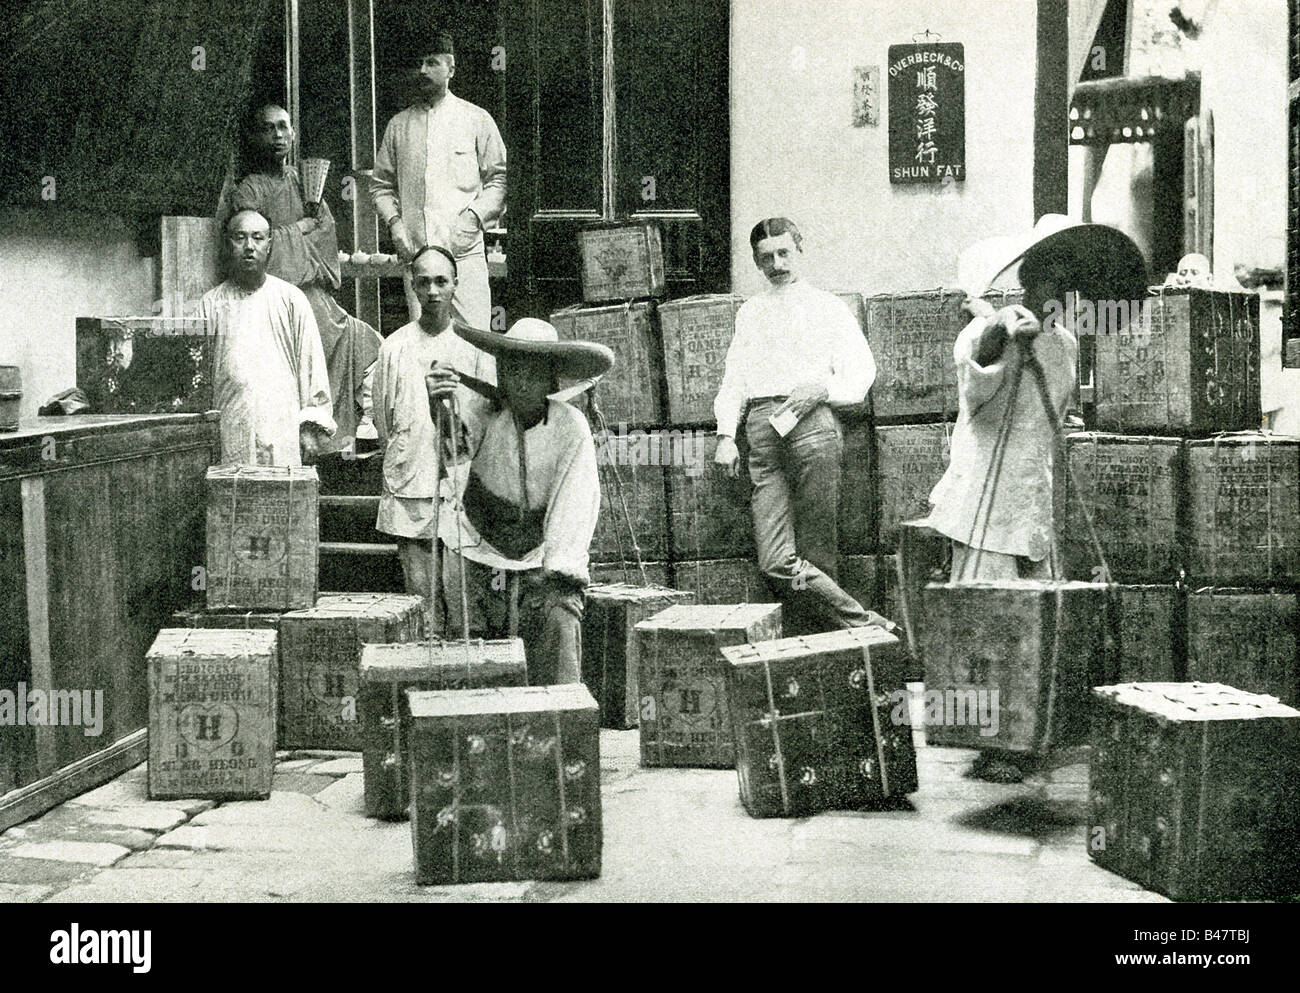 Chinese Merchants Selling Tea - Stock Image